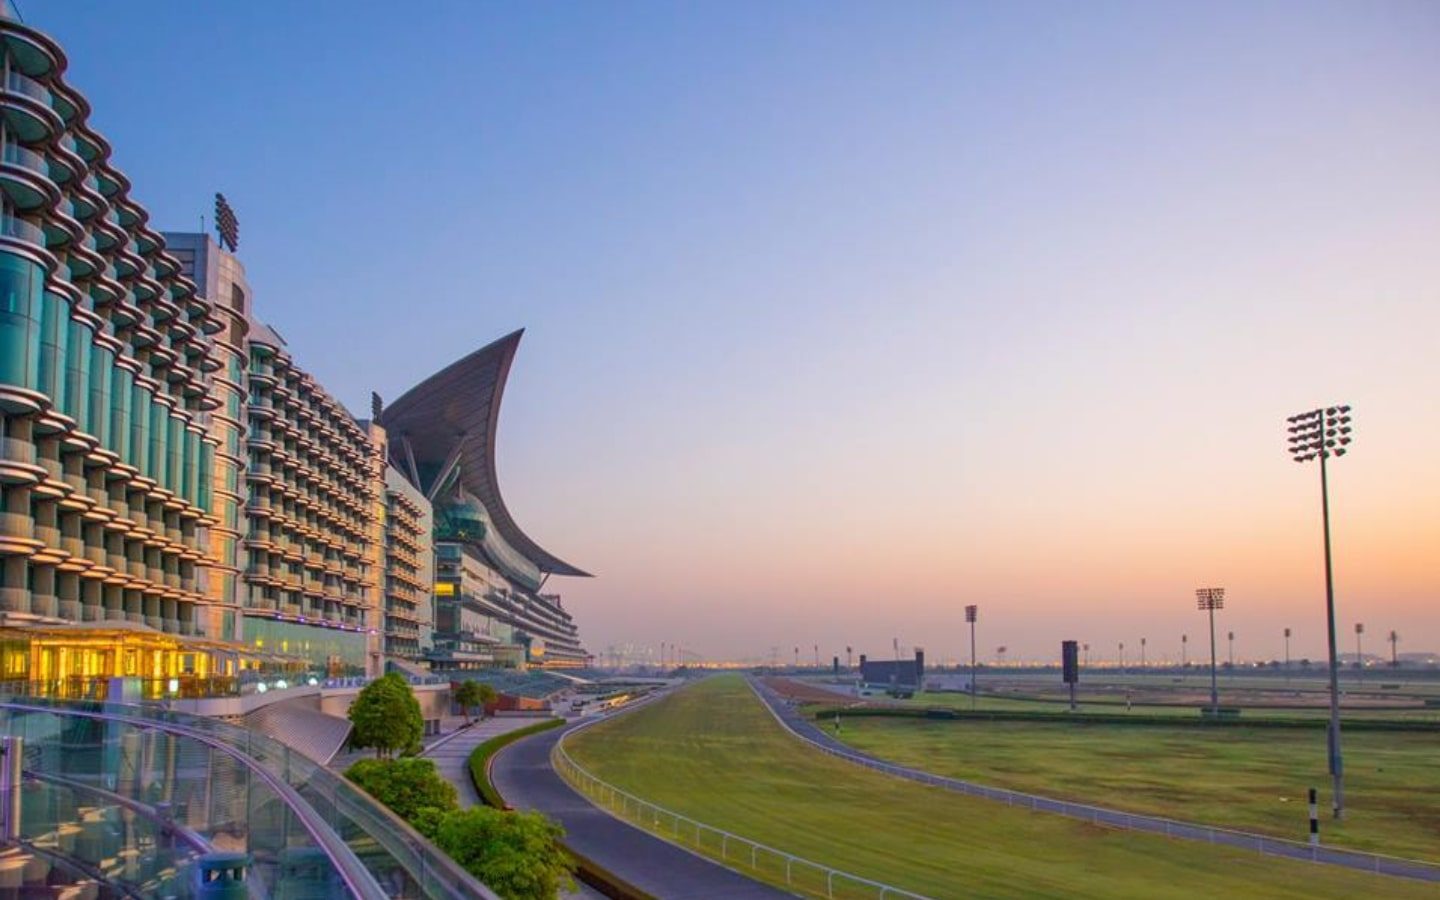 View of The Meydan Hotel and racecourse